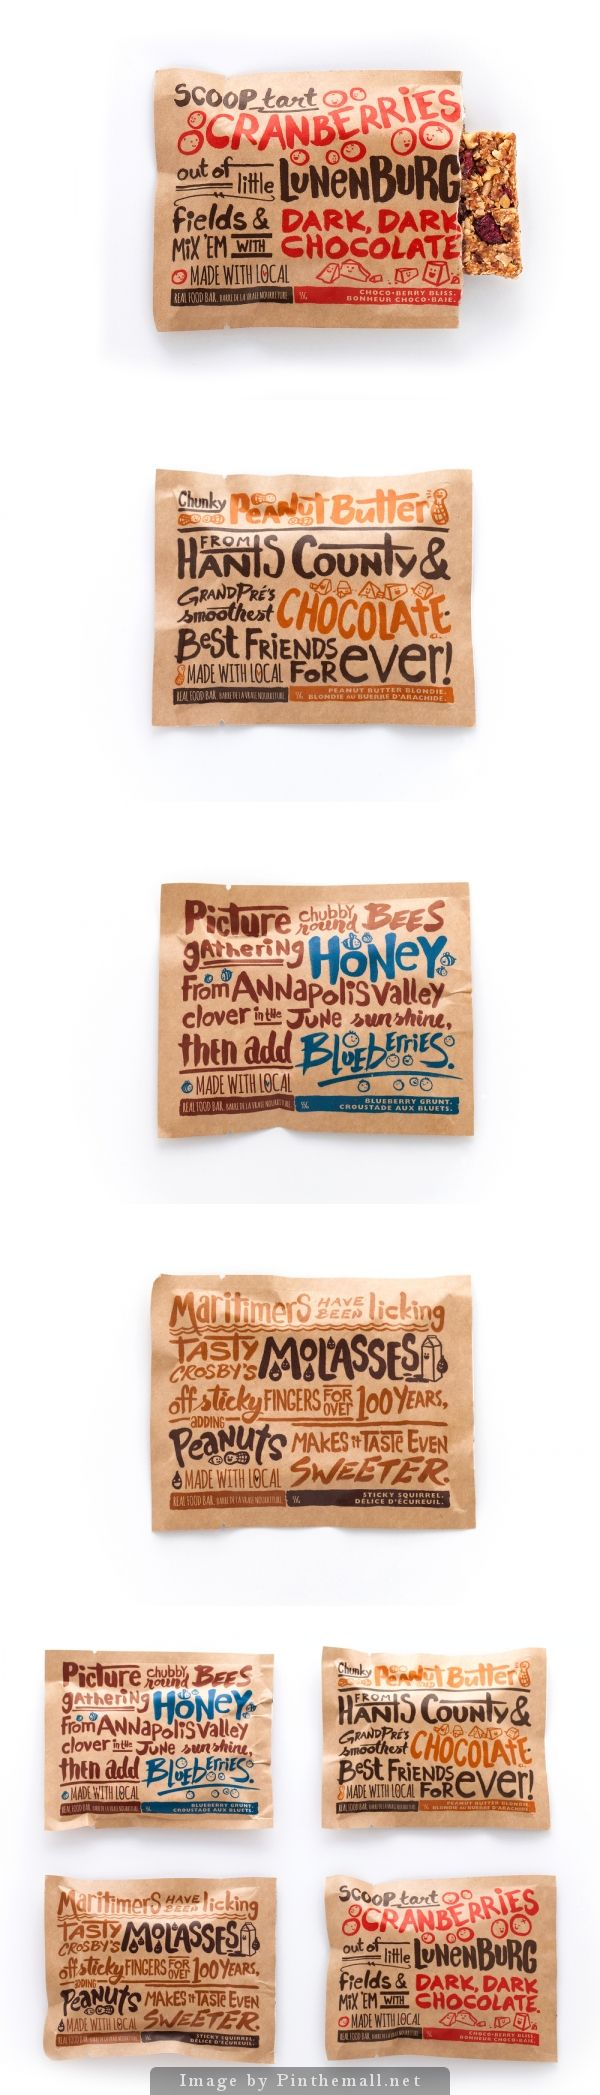 Yummy Made with Local good for you identity #packaging #branding curated by Packaging Diva PD - created via http://www.thedieline.com/blog/2014/6/19/made-with-local?utm_source=feedblitzutm_medium=FeedBlitzRssutm_campaign=thedieline